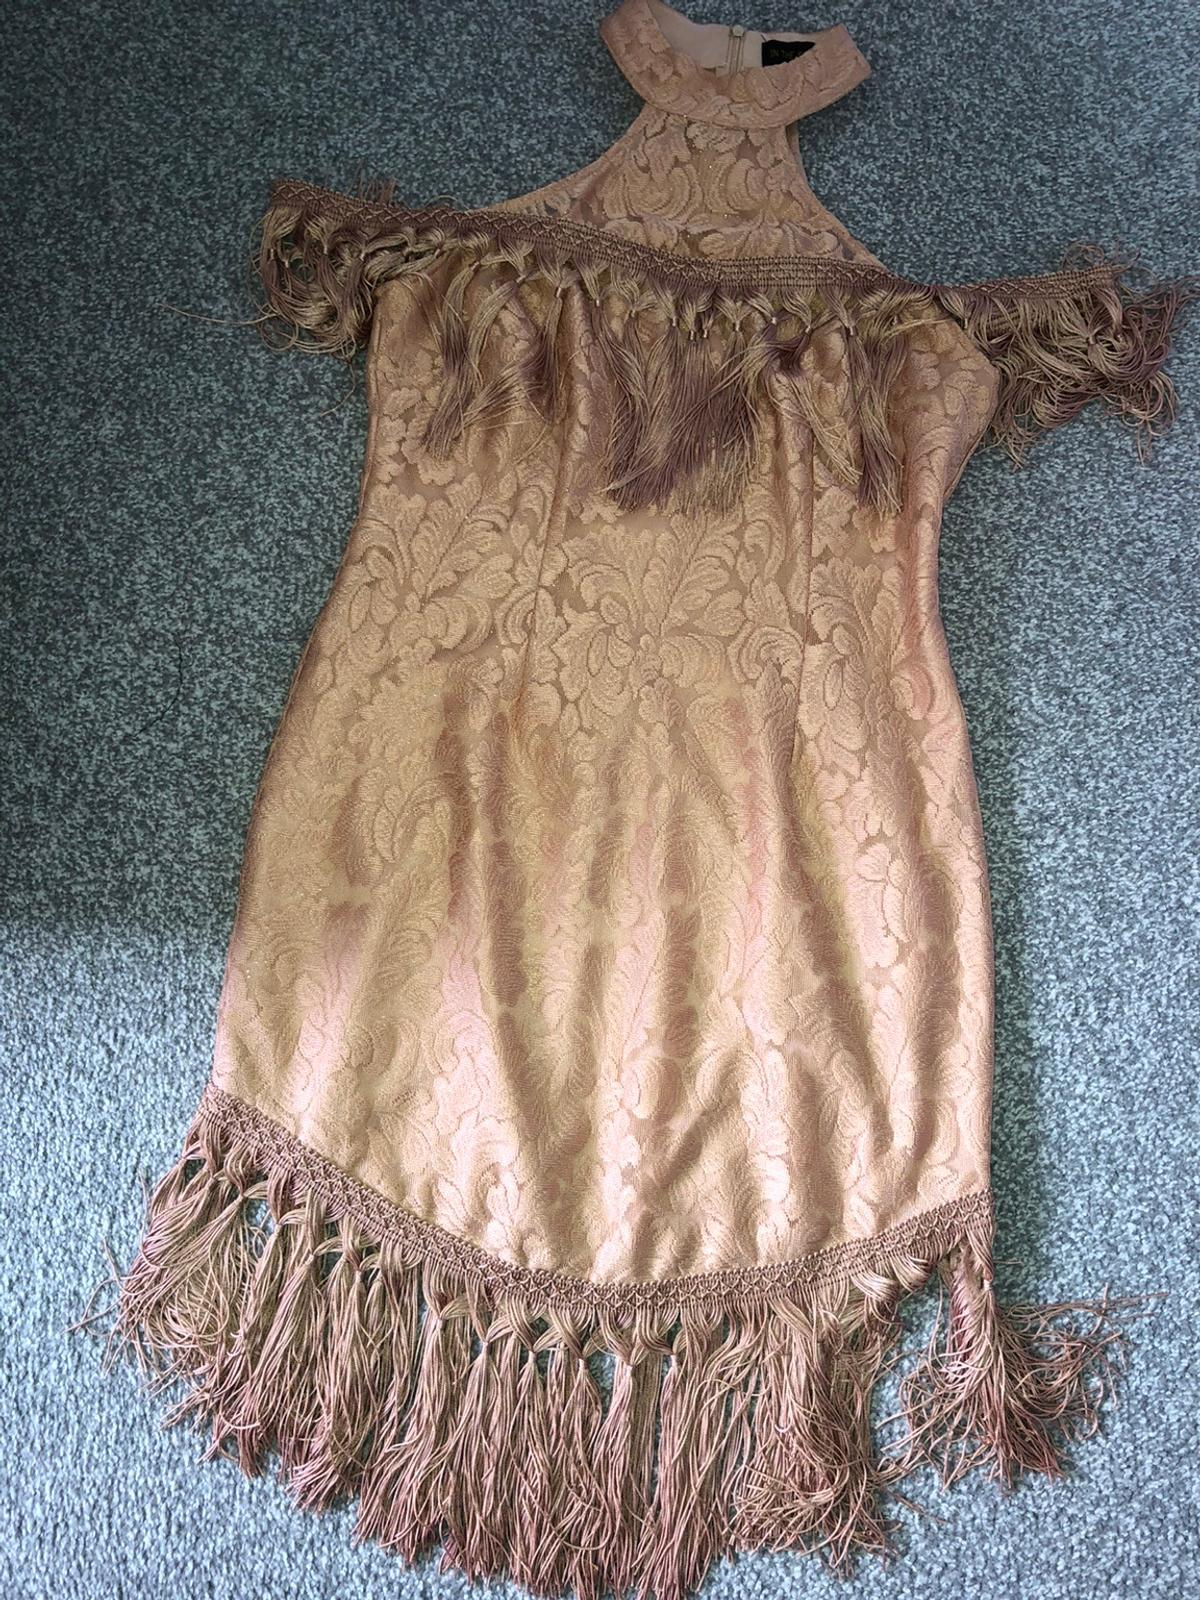 Size 12 in the style cold shoulder tassel dress worn once